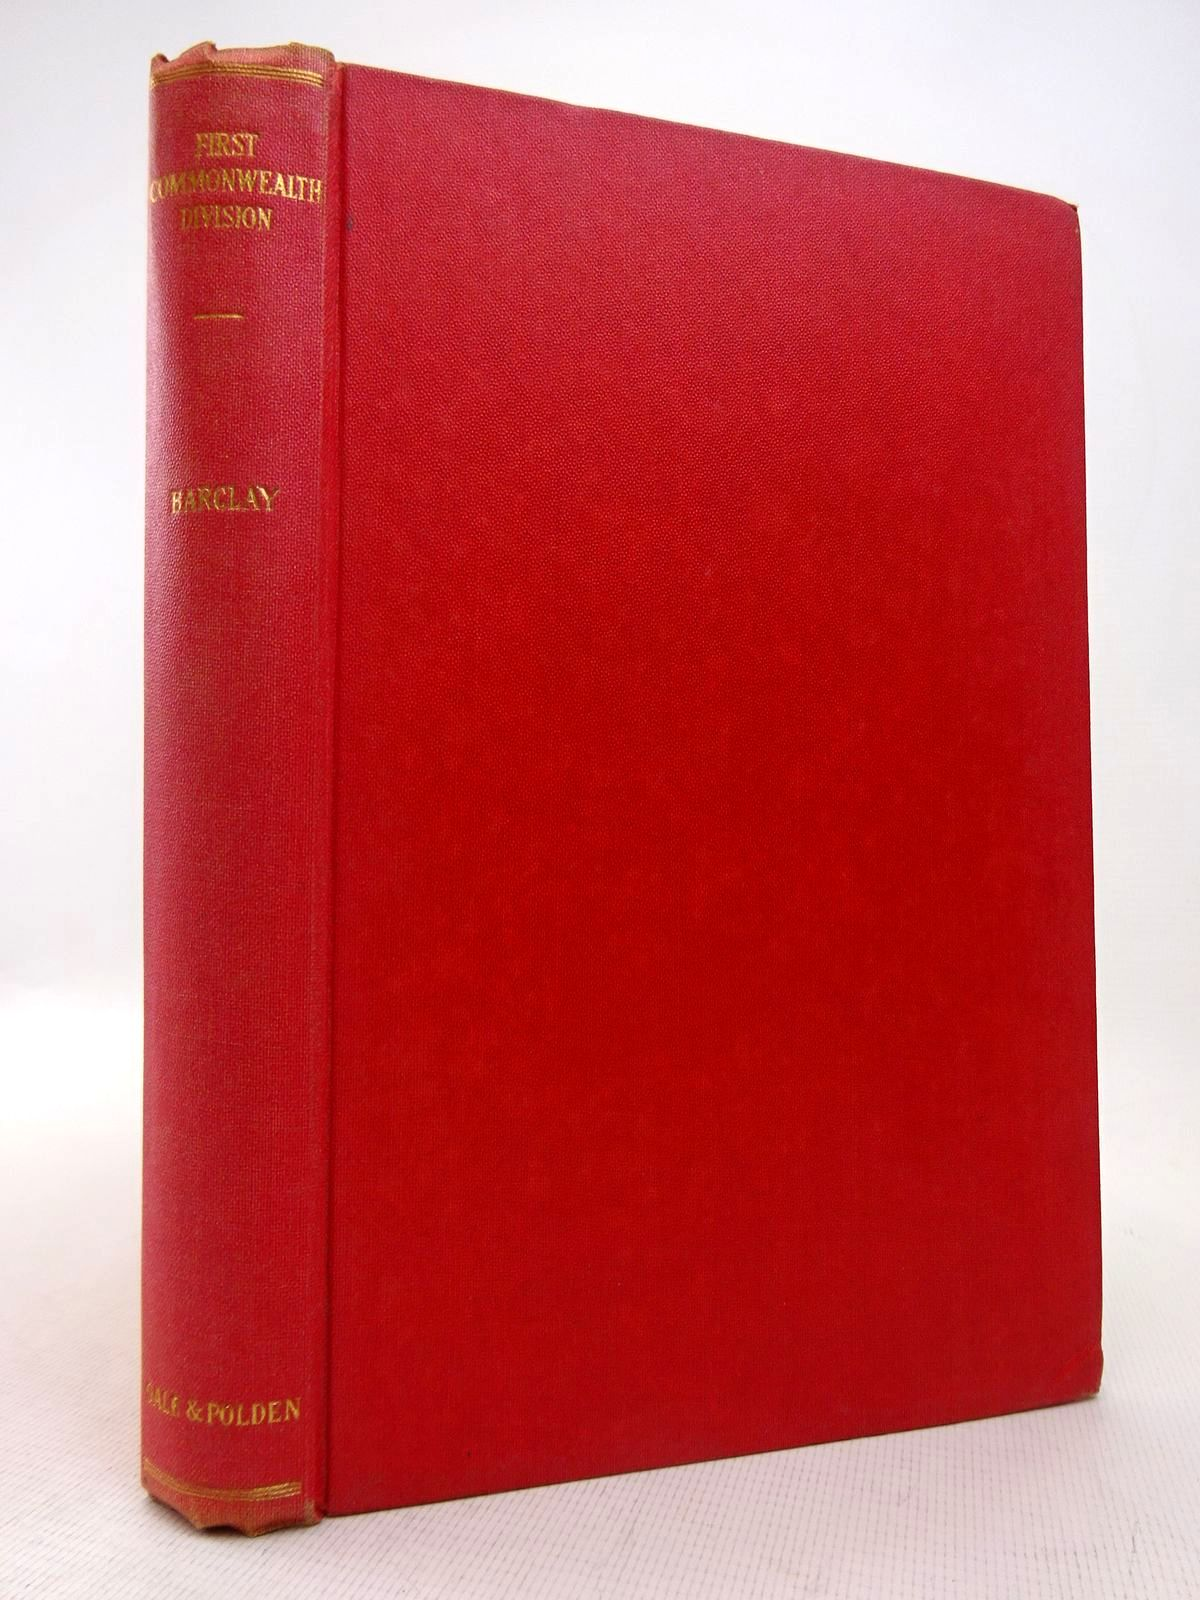 Photo of THE FIRST COMMONWEALTH DIVISION written by Barclay, C.N. published by Gale & Polden, Ltd. (STOCK CODE: 1816900)  for sale by Stella & Rose's Books